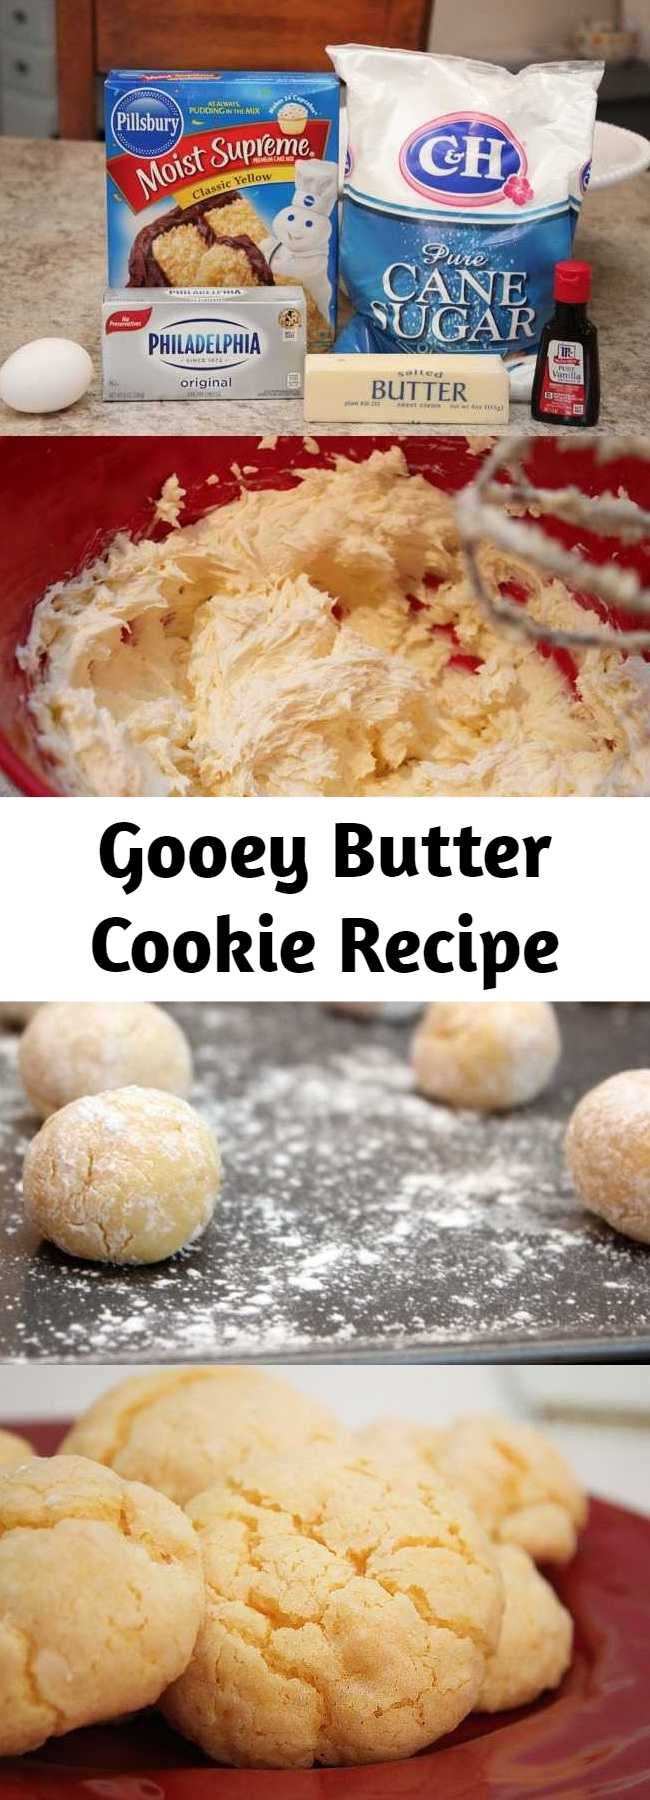 Gooey Butter Cookie Recipe - Gooey Butter Cookie's are absolutely delicious!  These cookies stay super light and fluffy and have a sweet vanilla taste.